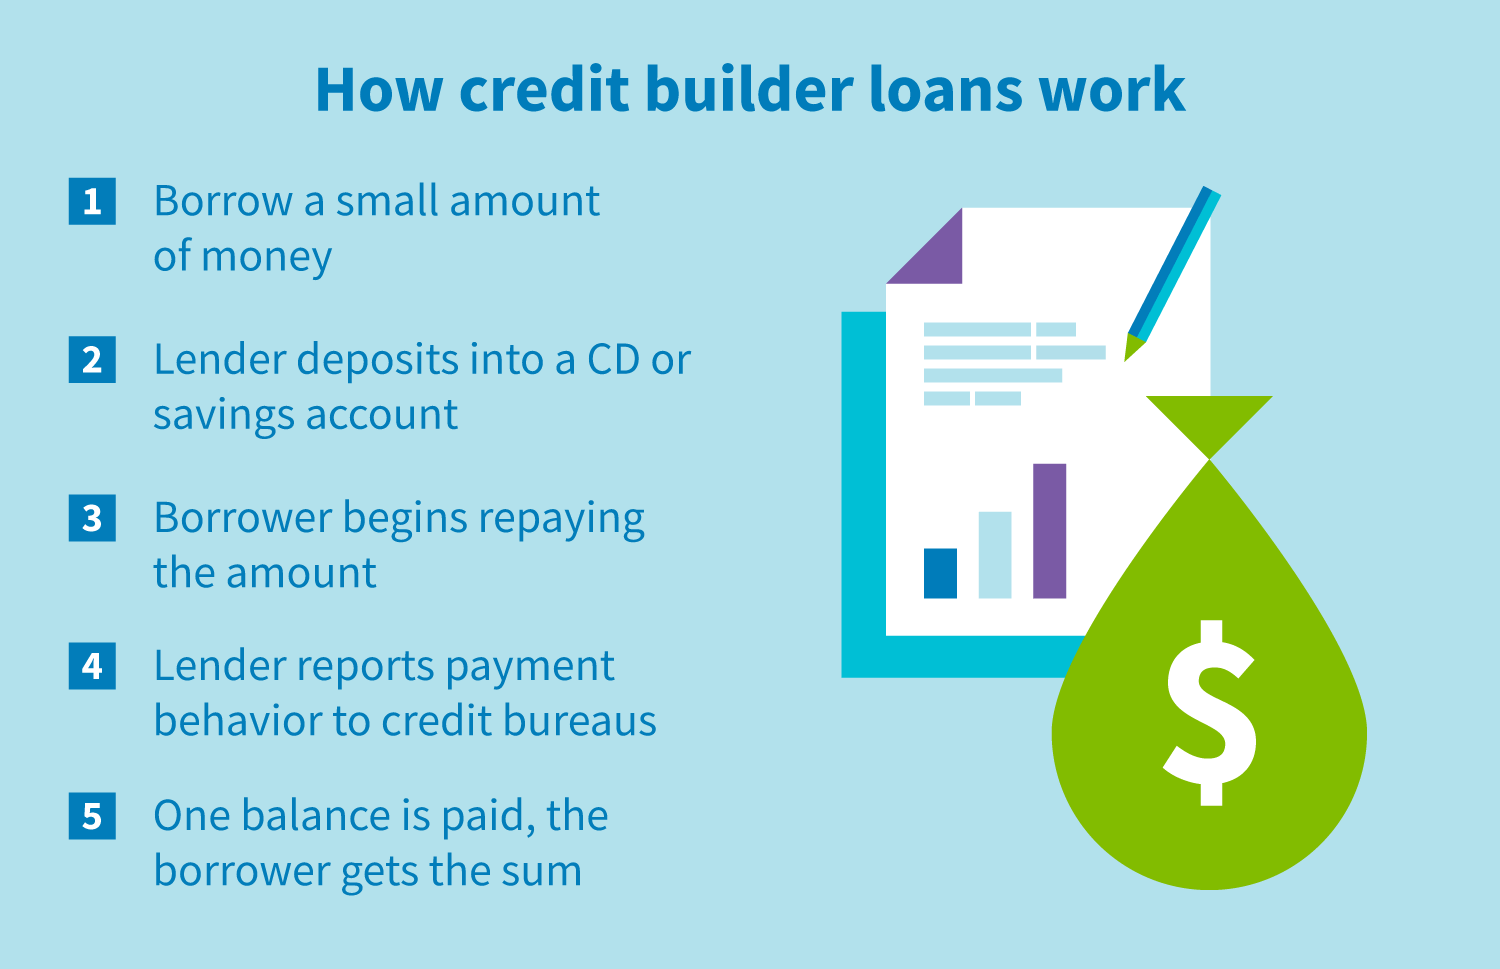 How credit builder loans work